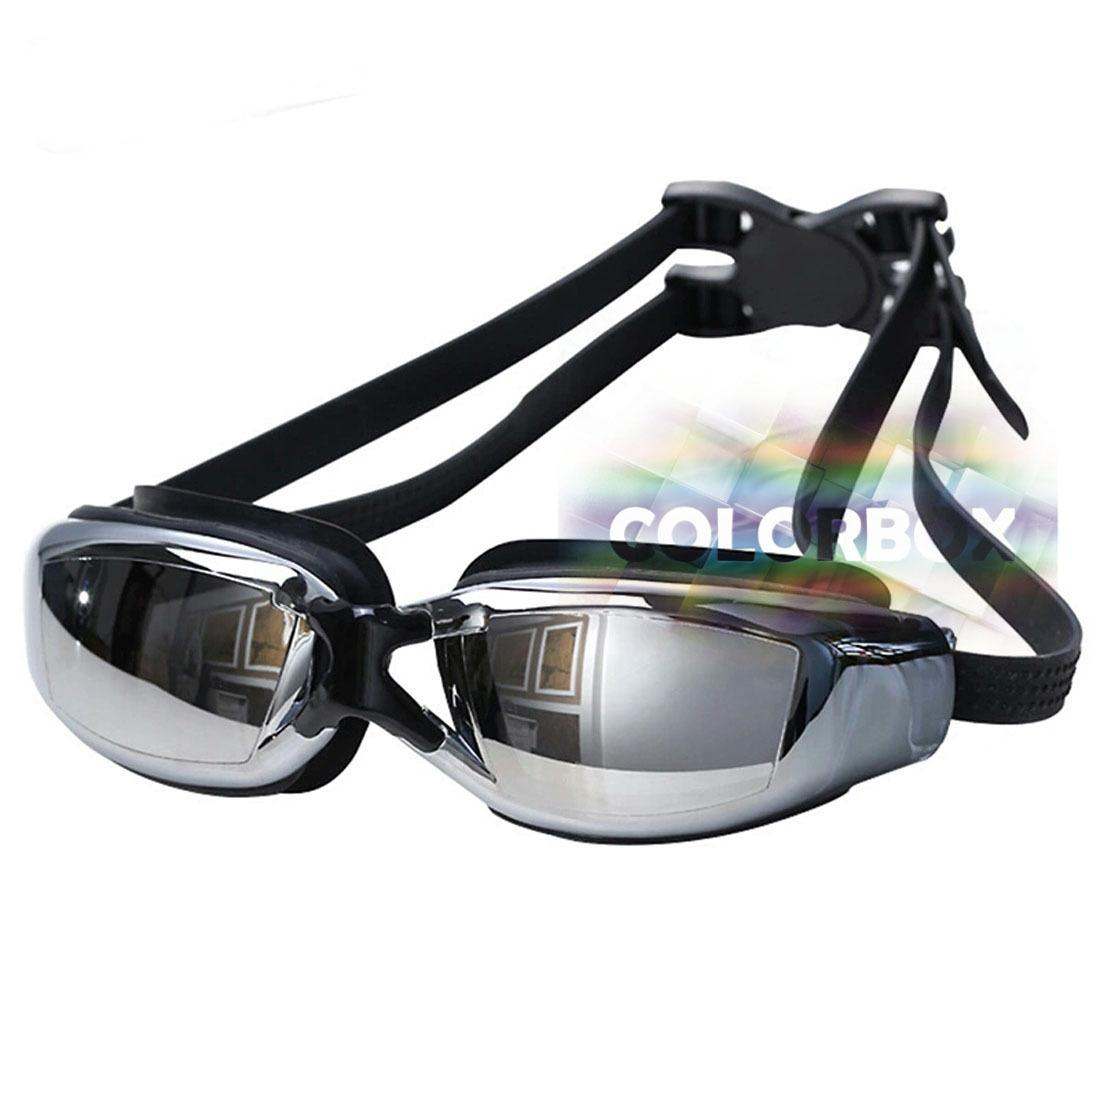 MR Kaca Mata Renang Santai Kacamata Renang Swimming Goggles Mirror Anti Fog Uv Protection Anti Kabut + Kotak Luxury Crystal Transparant  - Hitam